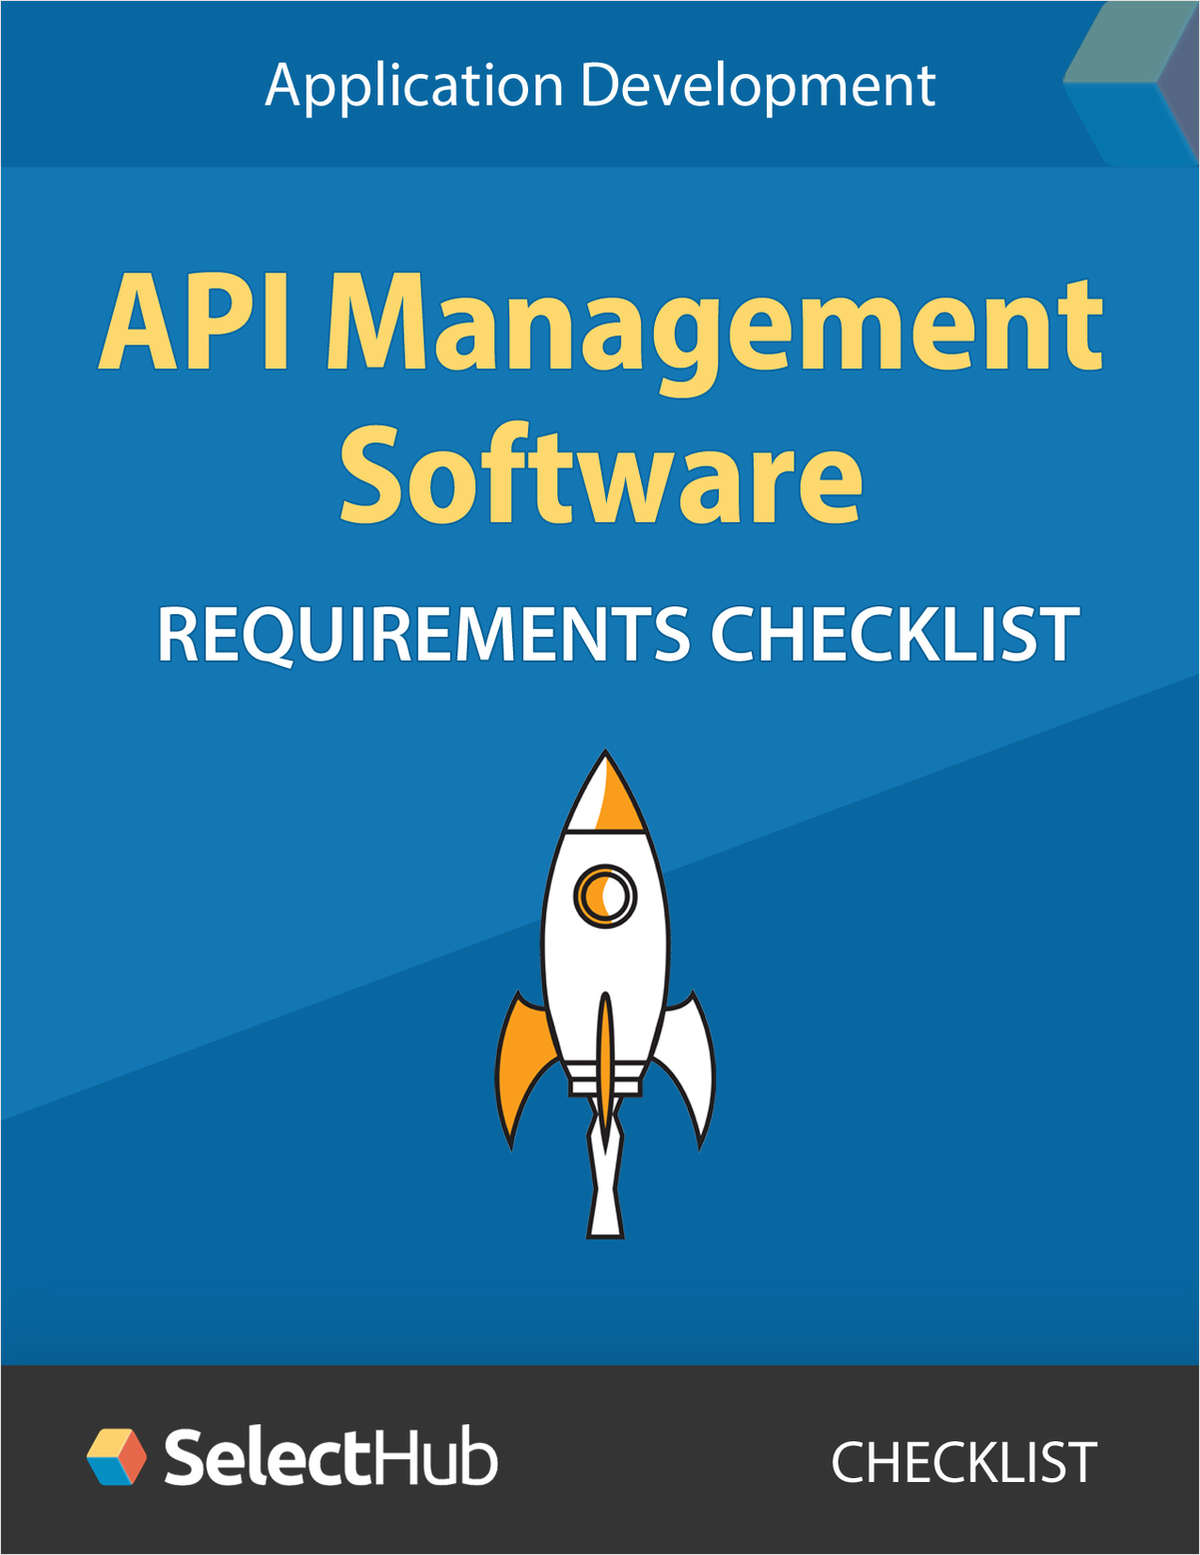 API Management Software Requirements Checklist